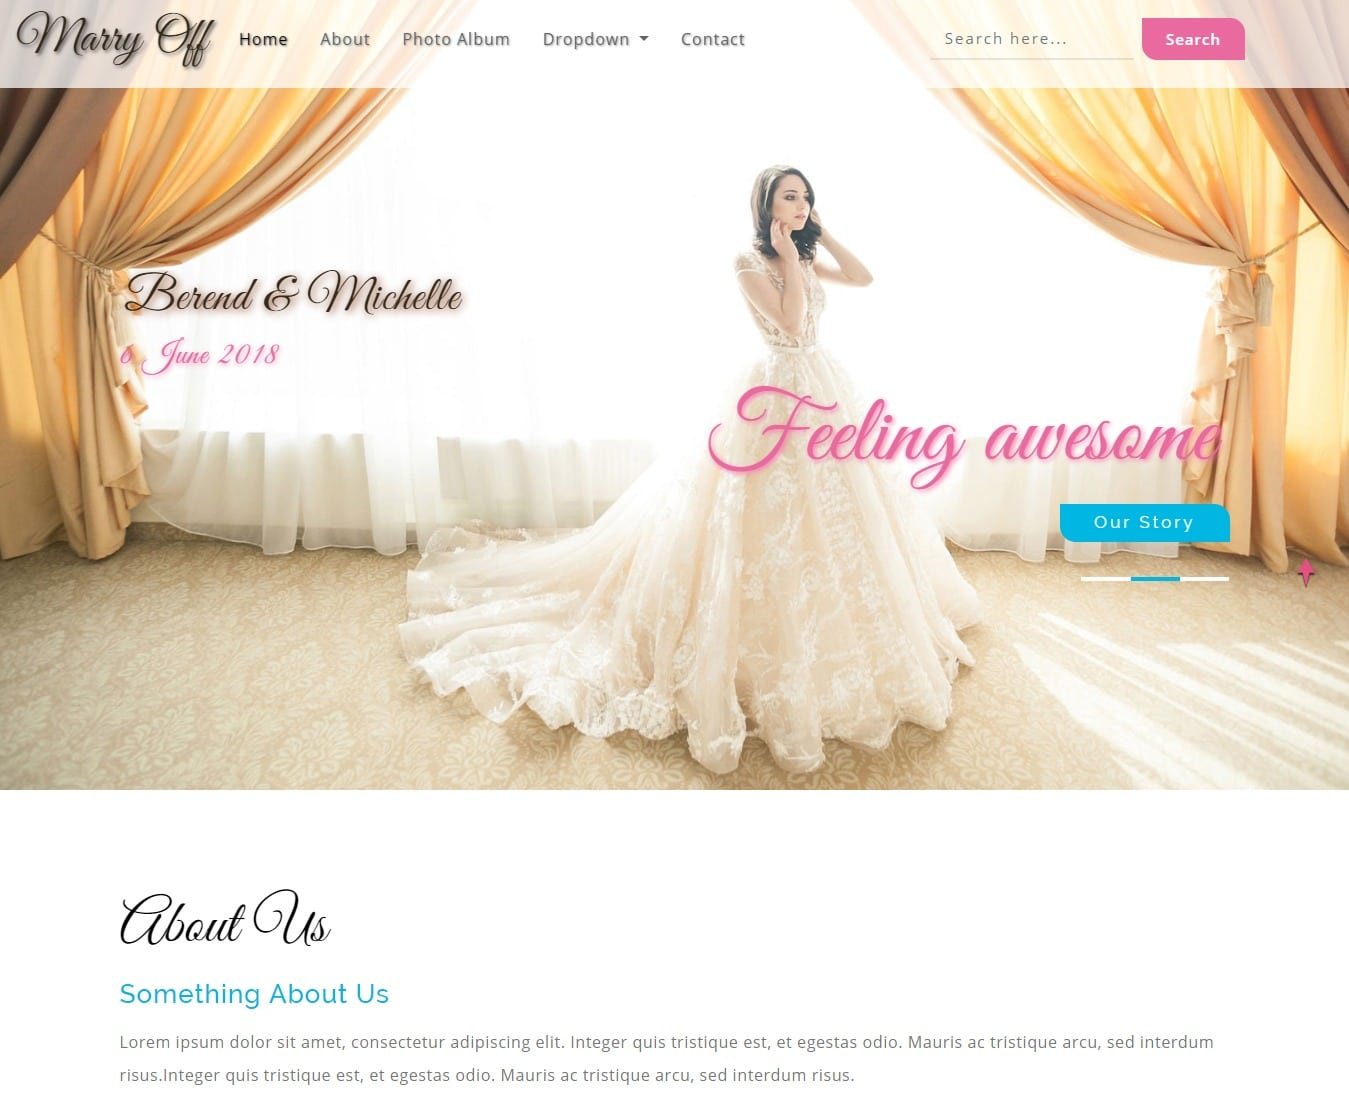 marryoff-free-wedding-website-template